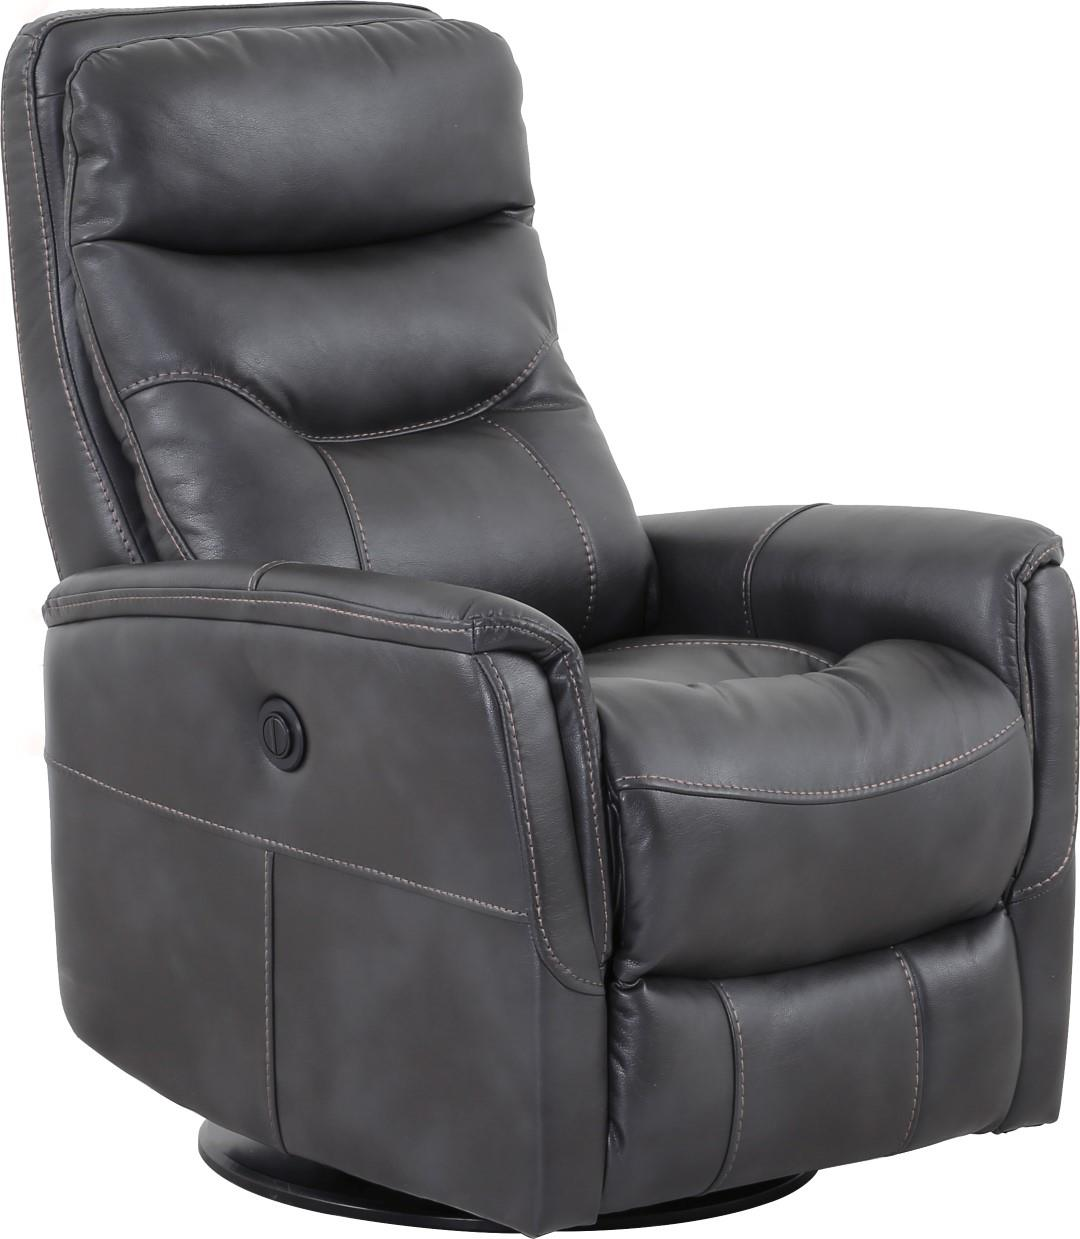 Gemini Rechargeable Battery Swivel Glider Recliner Image